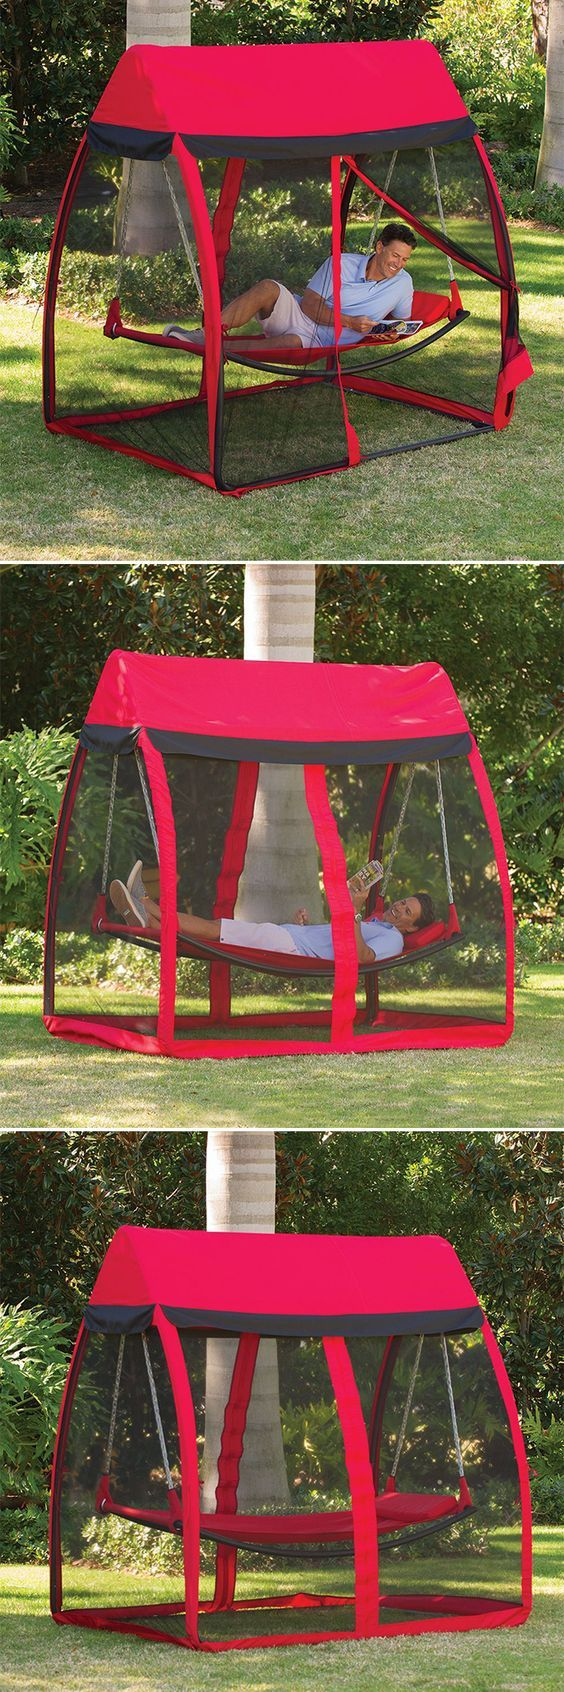 This is the hammock that shields you from pesky mosquitoes and insects while you sway comfortably.